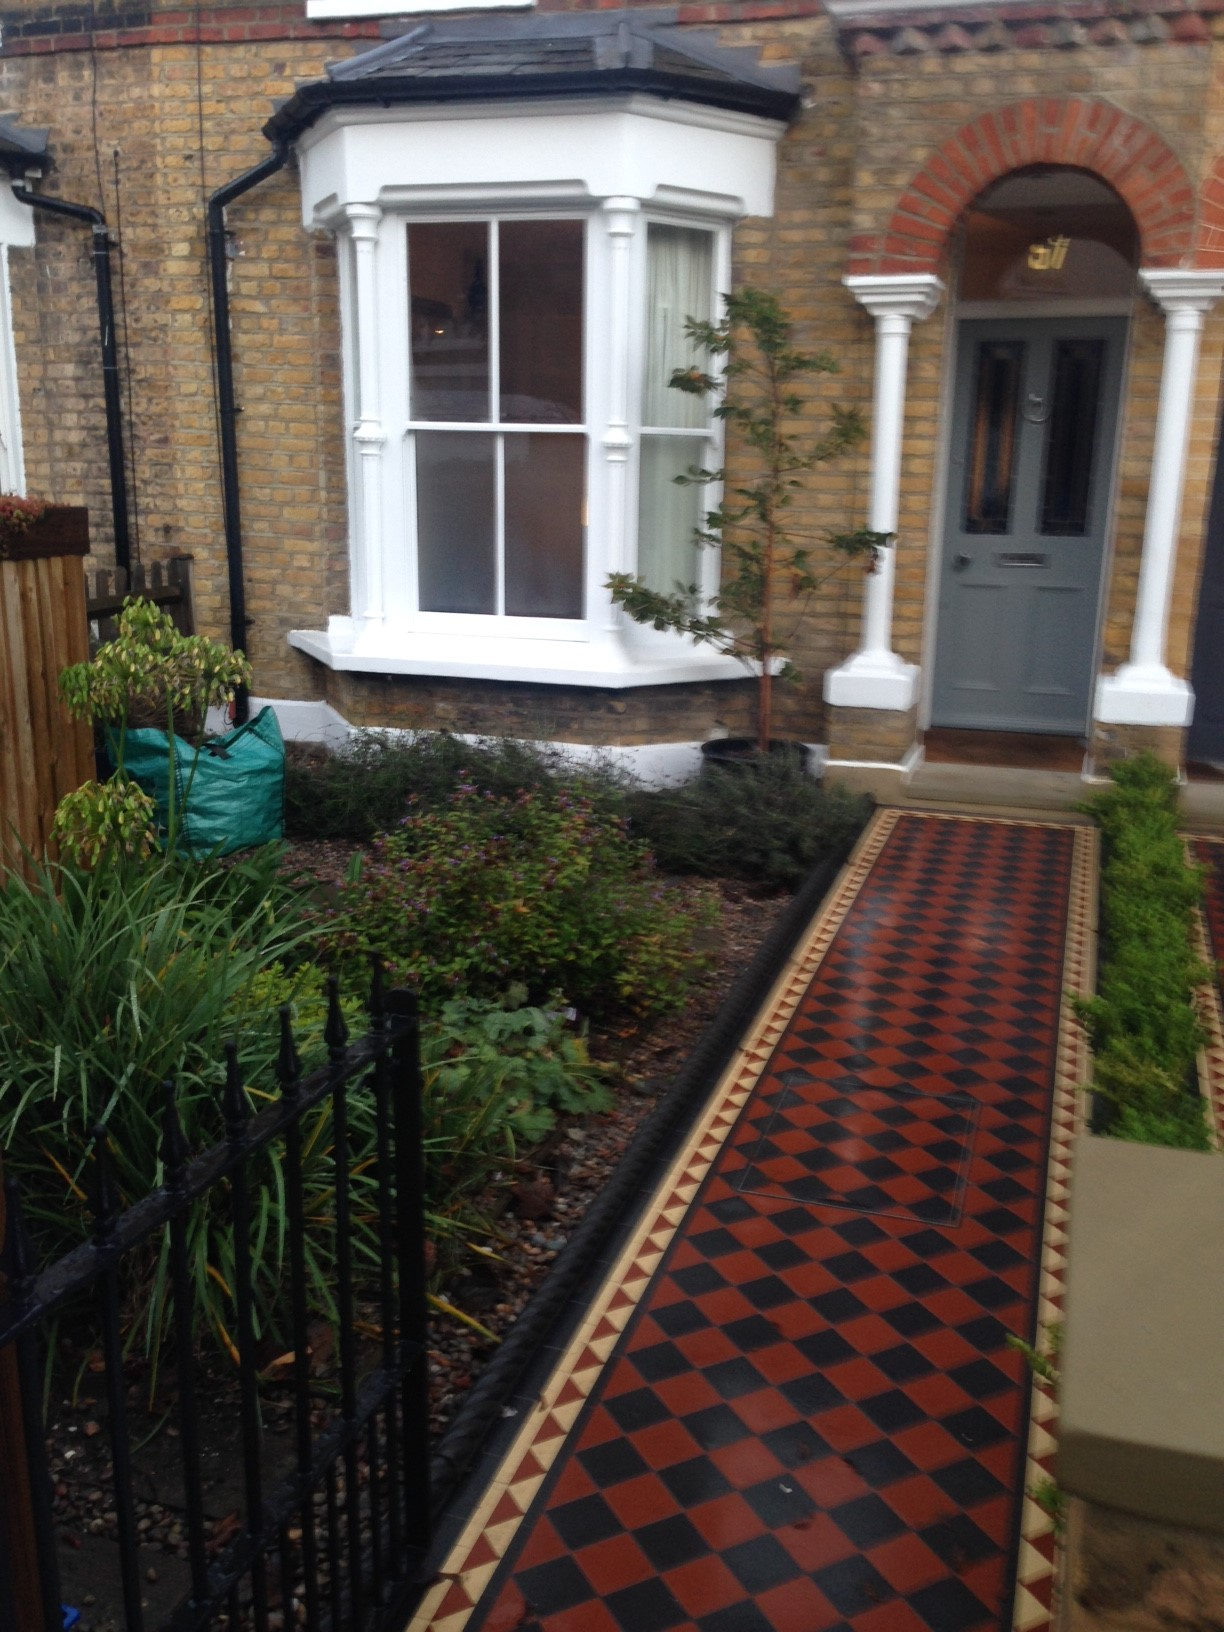 Brixton Herne Hill Victorian Mosaic Tile Path black and red tile with Yorkstone pier cap entrance stone and imperial yellow brick london stock wall (13)